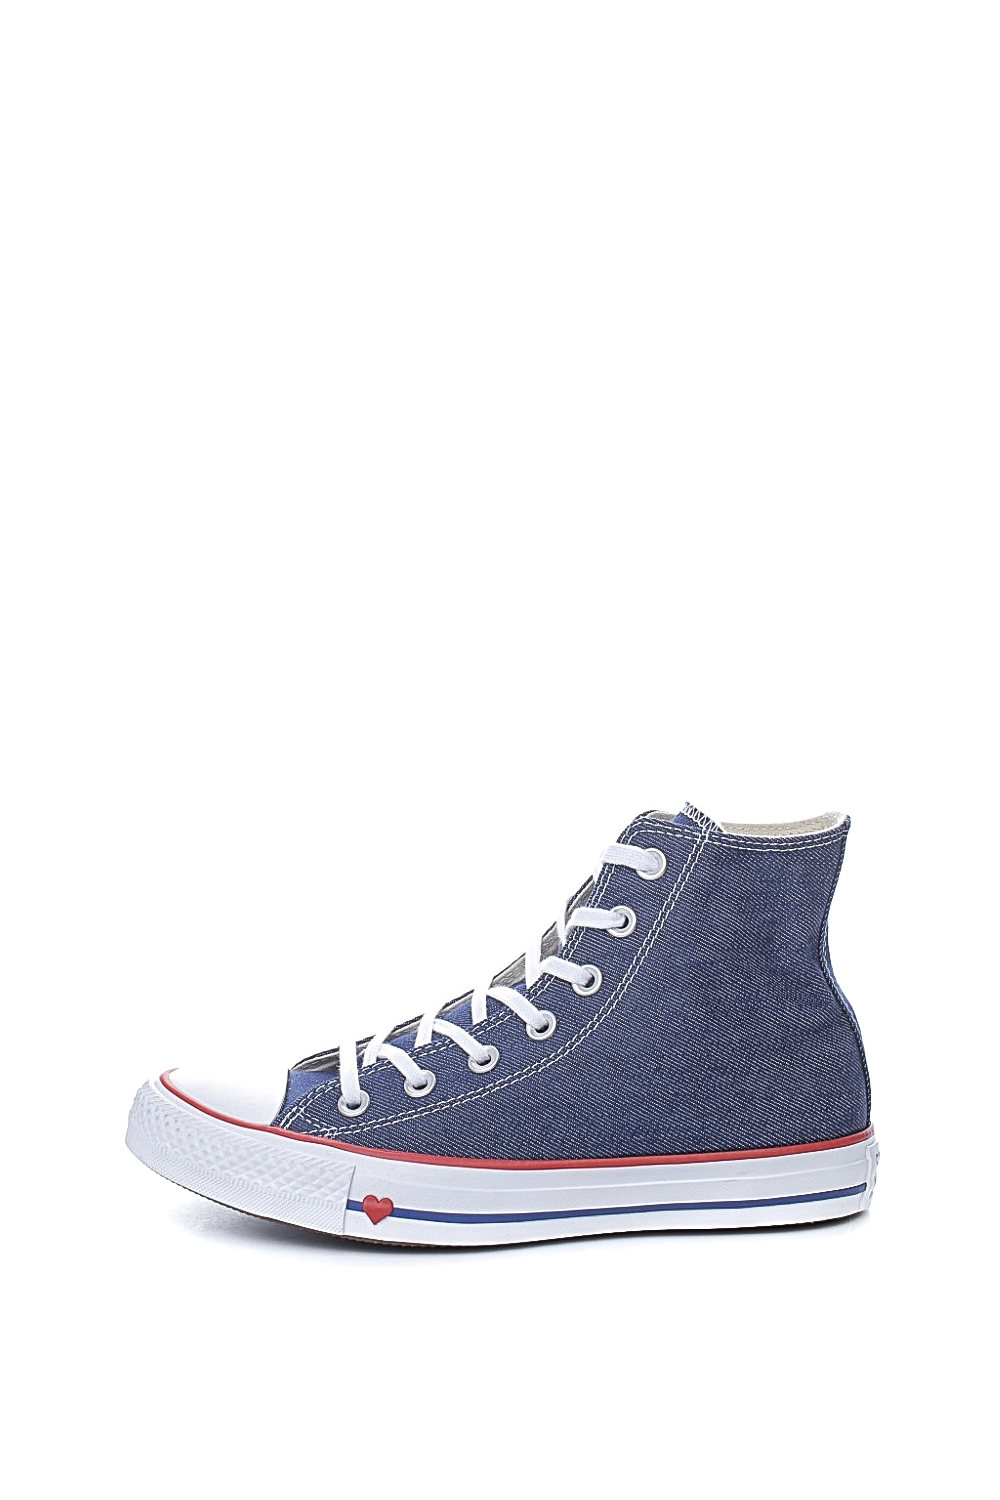 CONVERSE - Unisex Τζιν Sneakers CONVERSE Chuck Taylor All Star Hi Μπλε